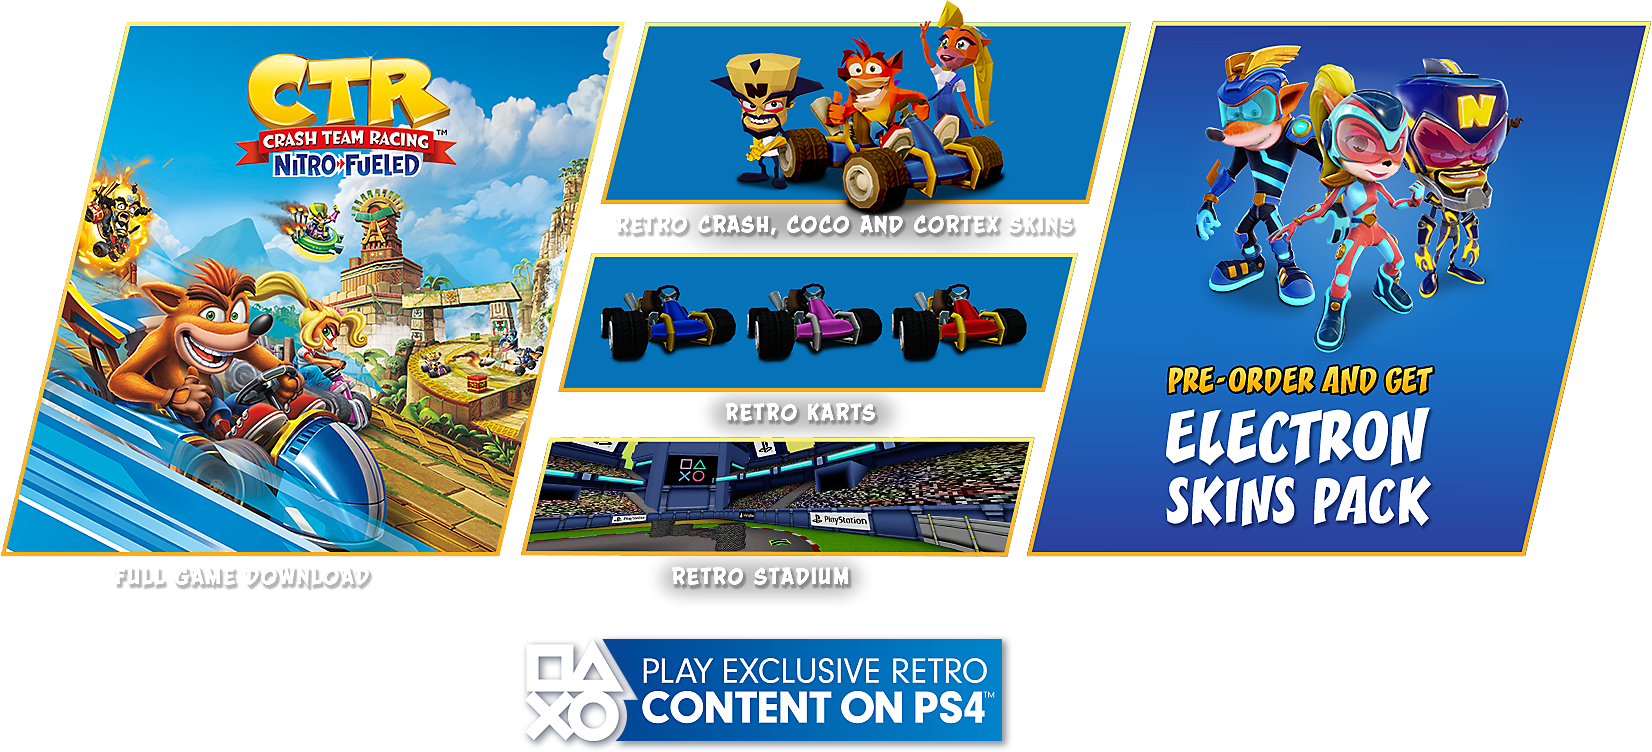 Crash Team Racing Nitro-Fueled Standard Game Edition Contents